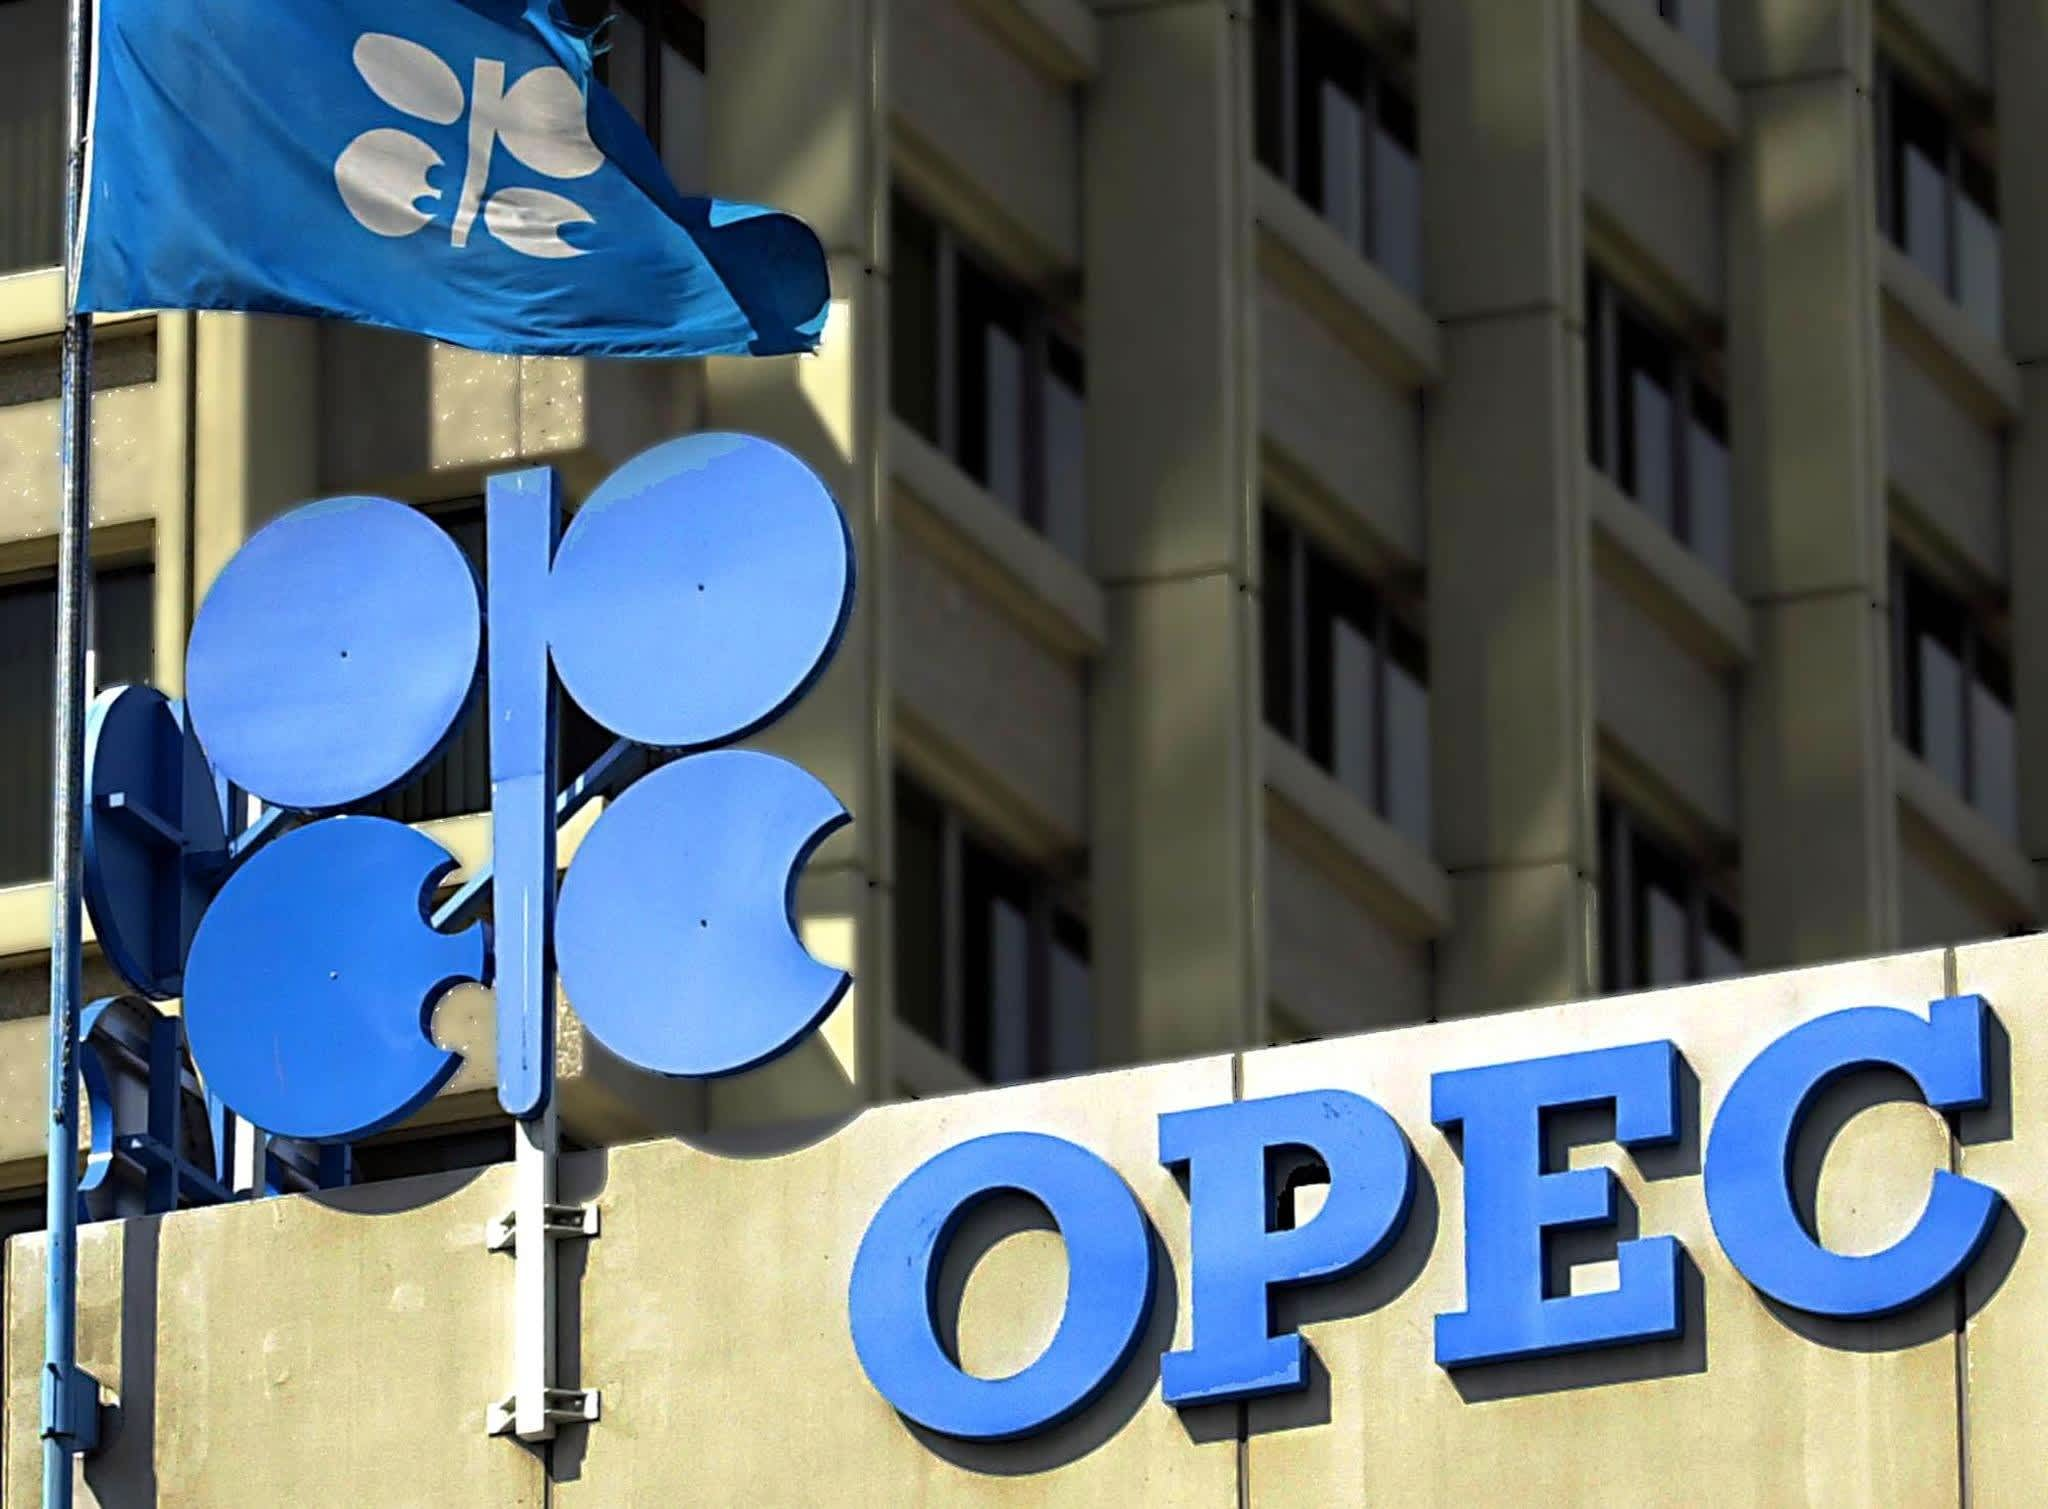 OPEC July crude oil output surges 340,000 b/d from June to 32.66 mil b/d: Platts survey